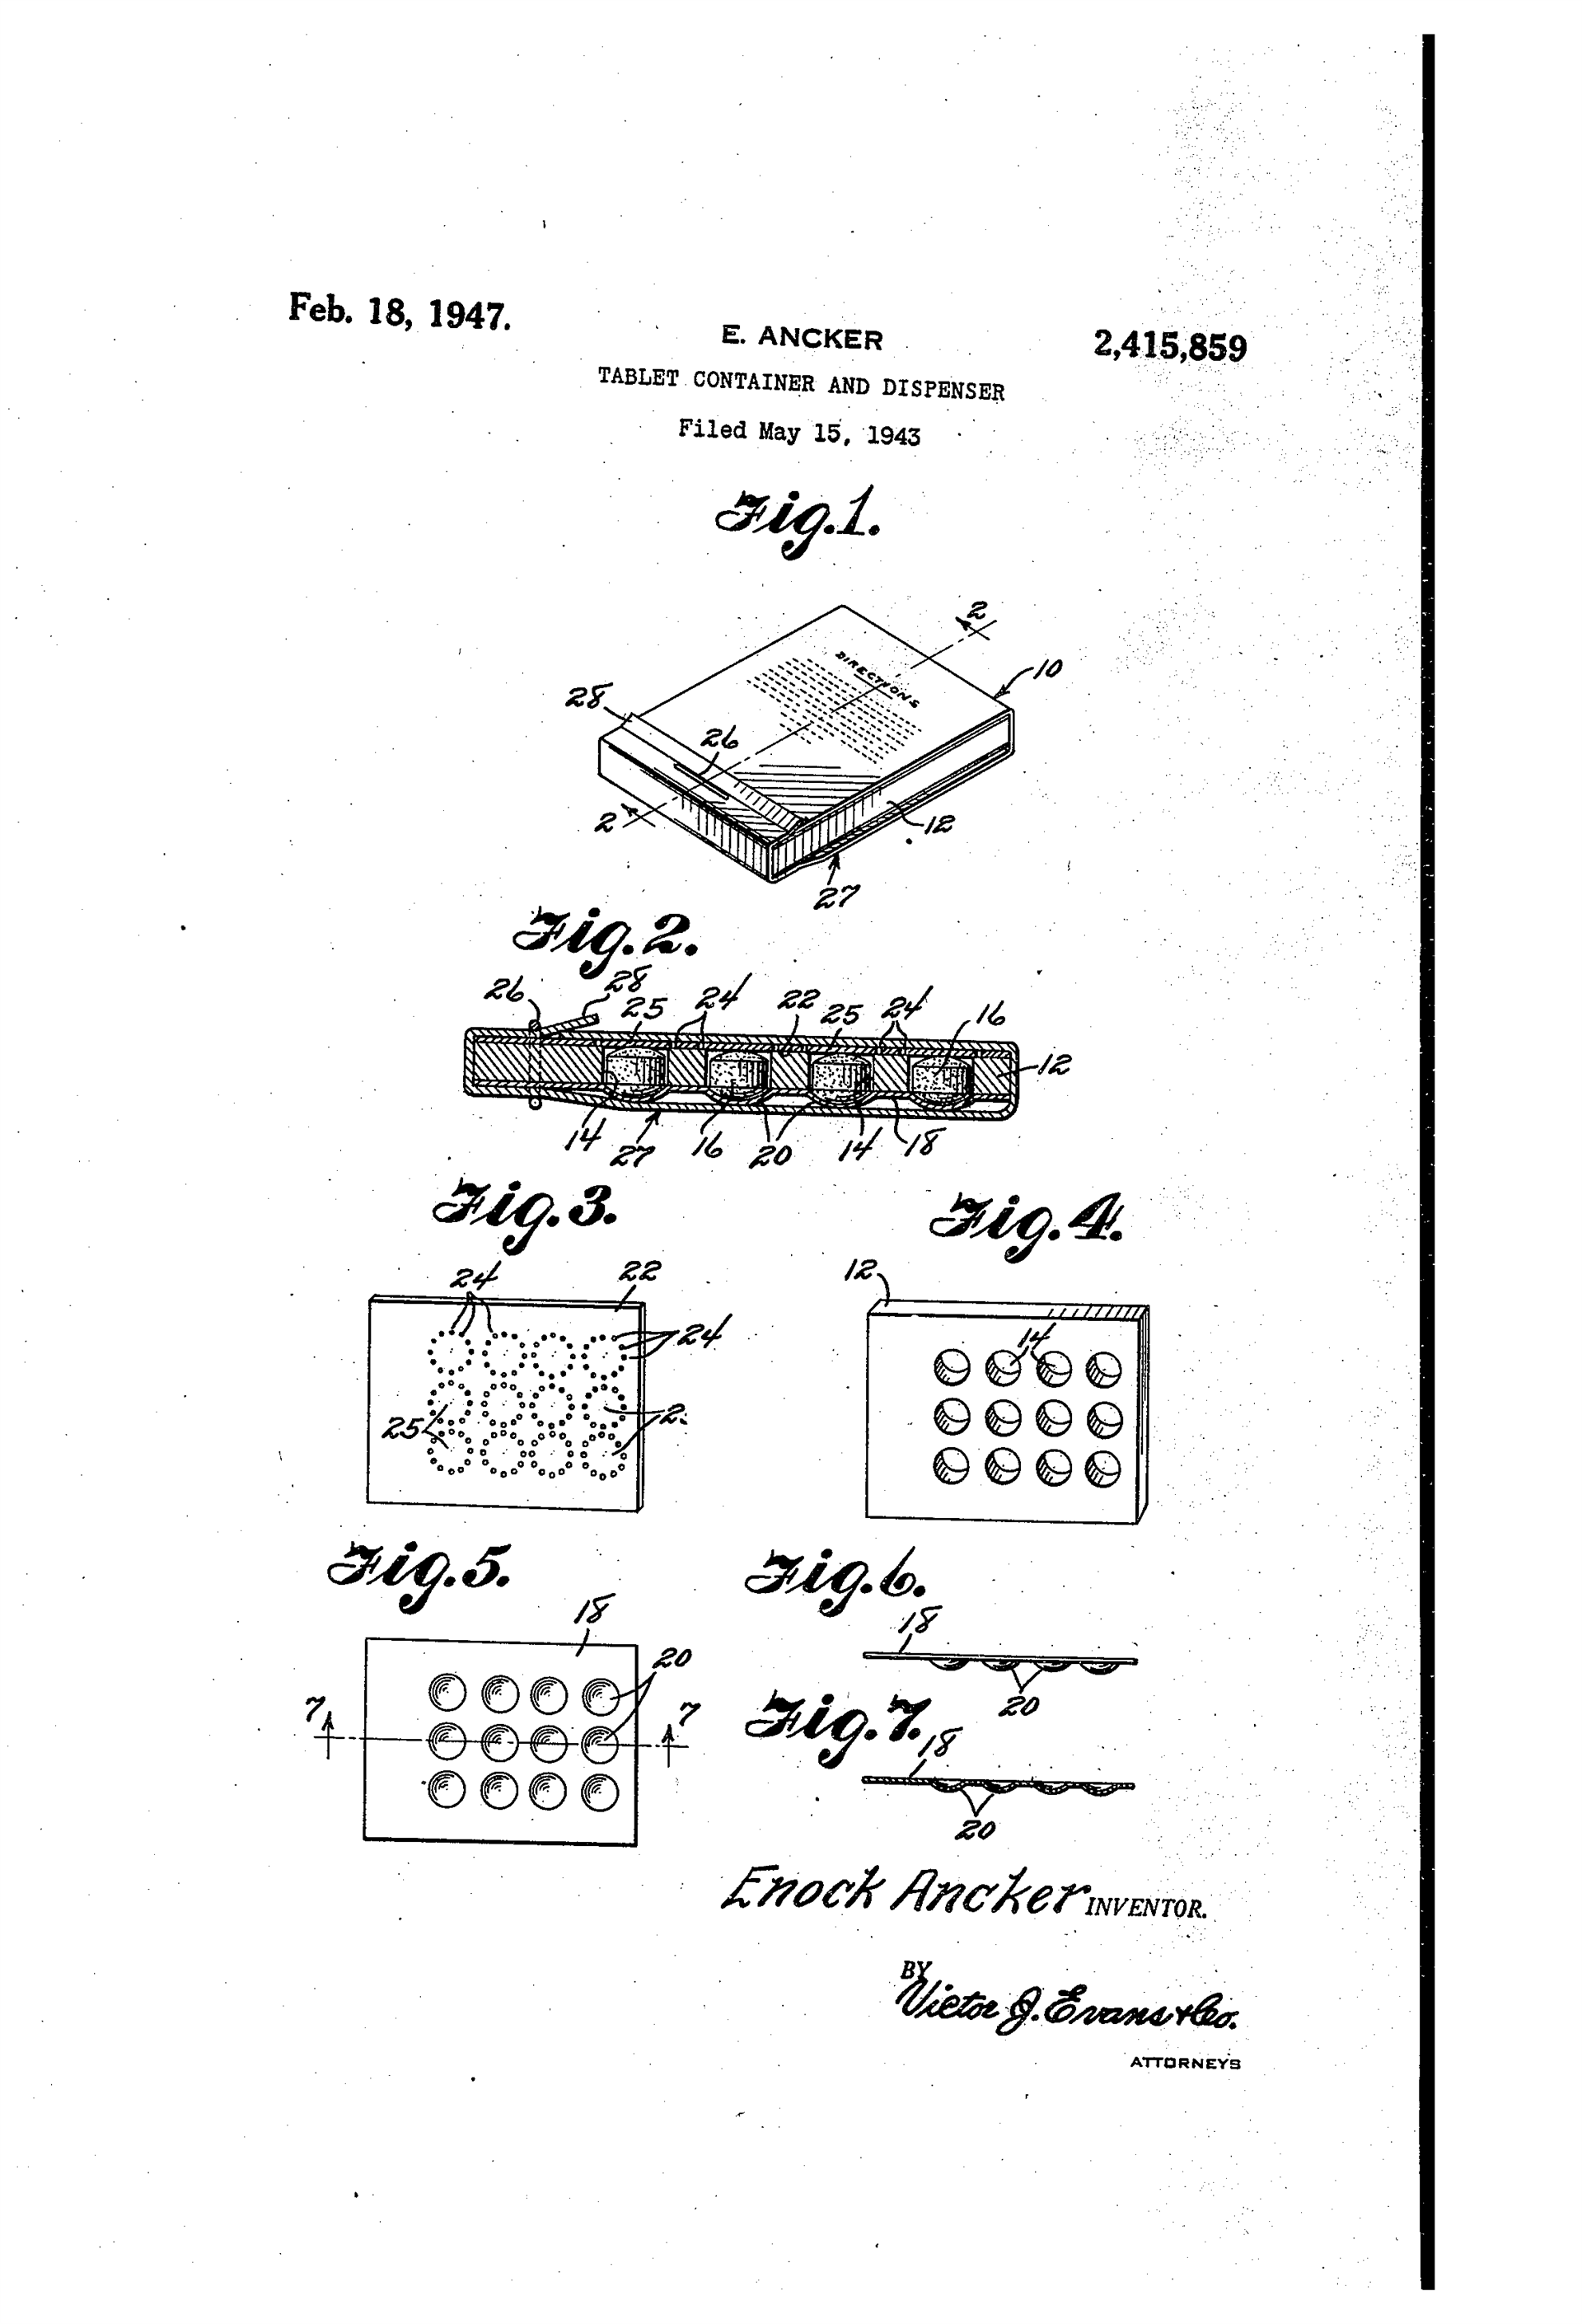 blister packaging diagram who invented blister packaging  the beginning of blister packaging  who invented blister packaging  the